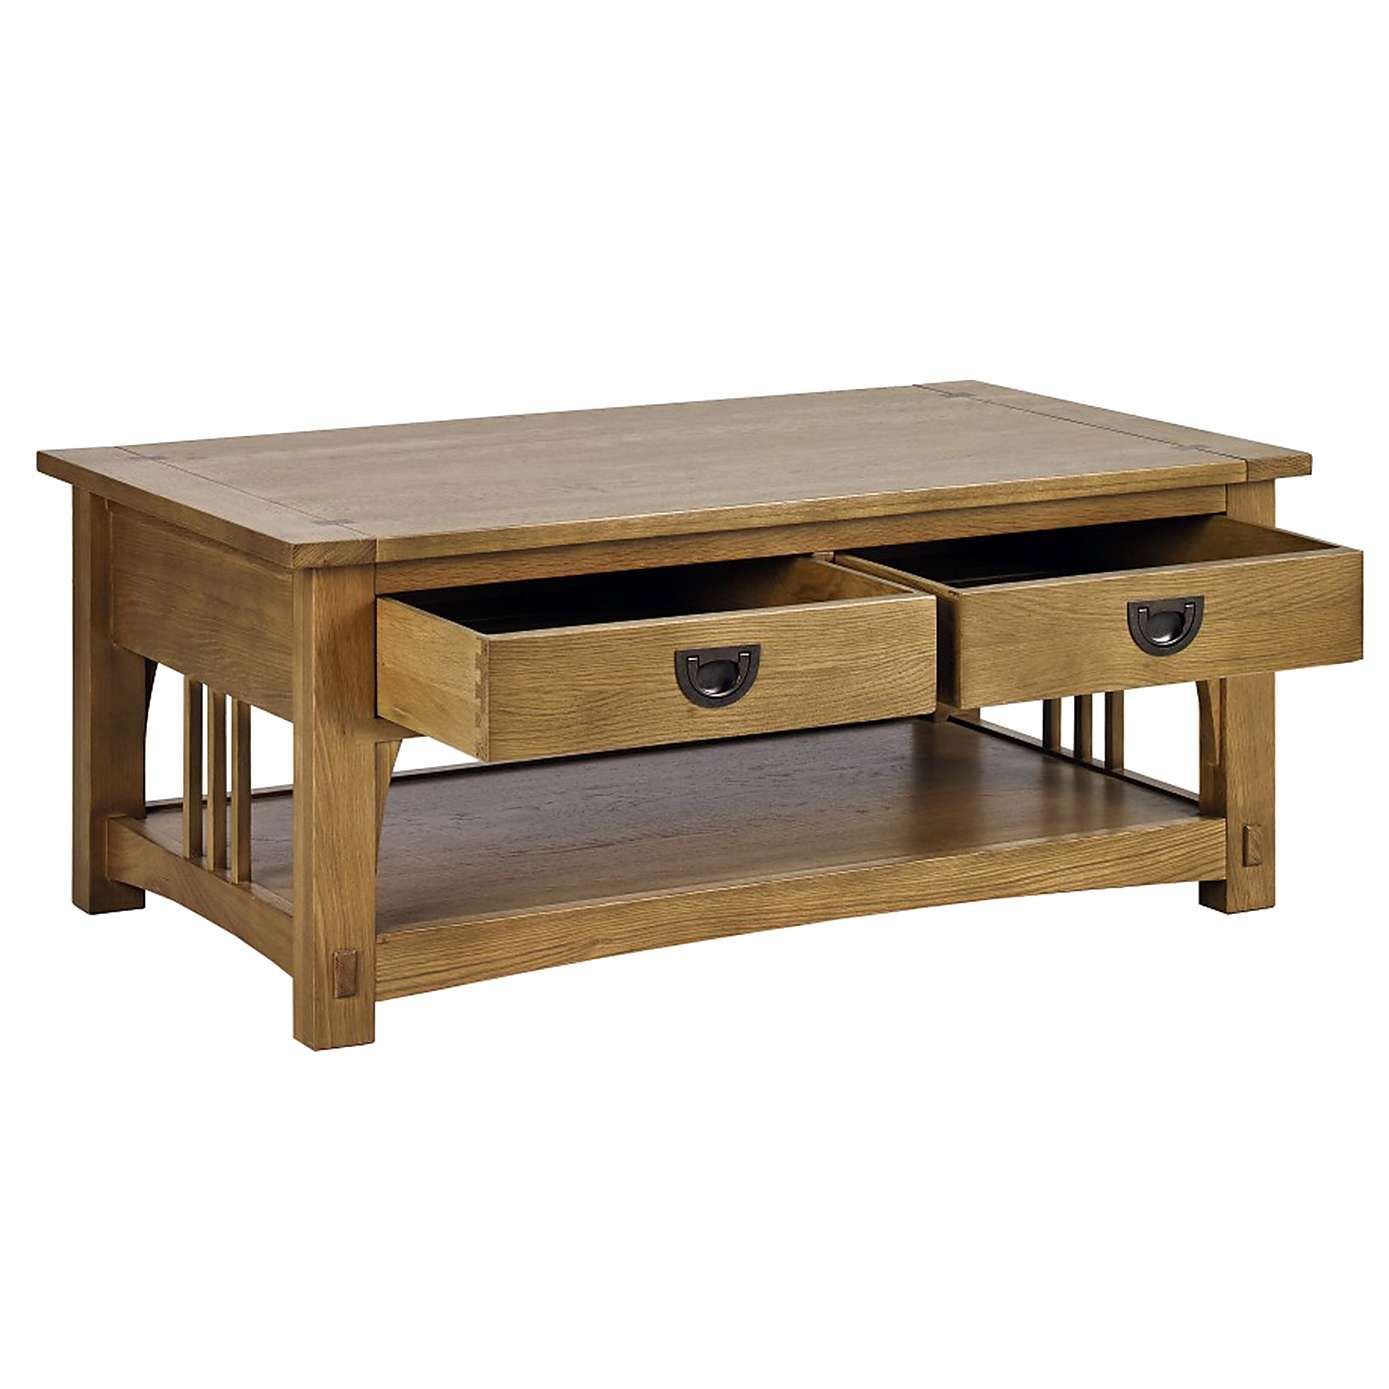 Dorma Cheltenham Oak Coffee Table Dunelm